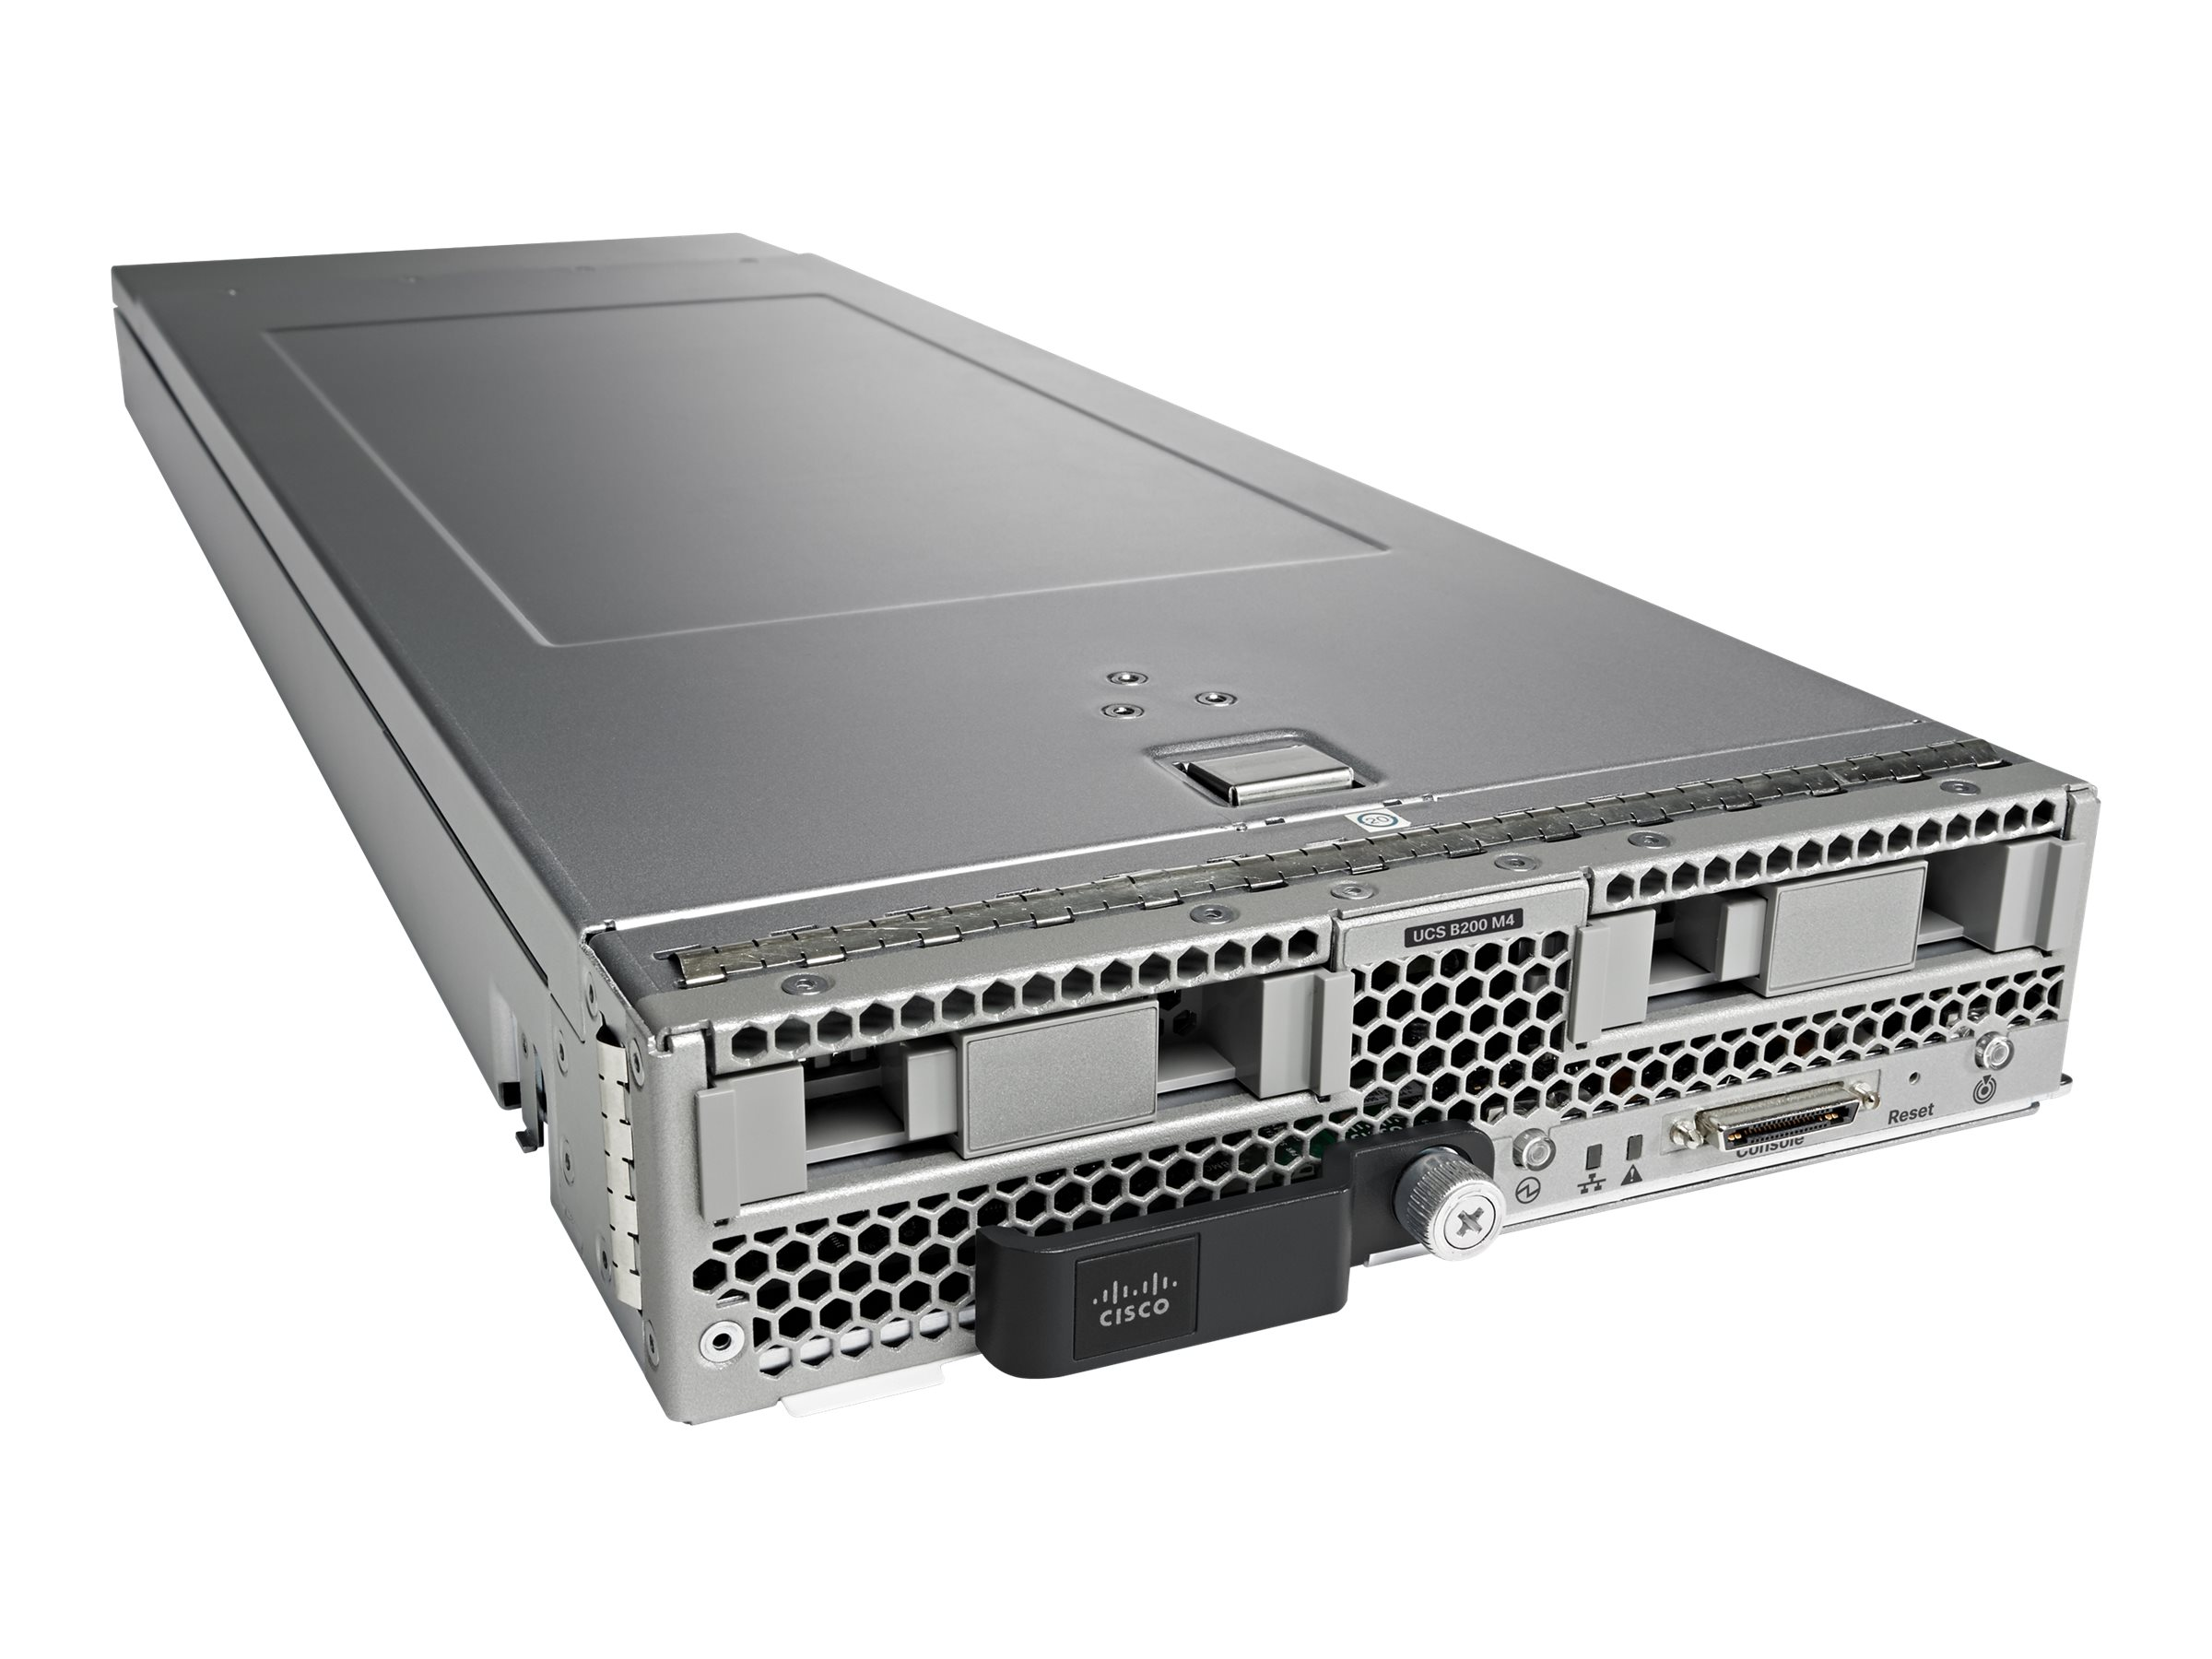 Cisco UCS-SP-B200M4-C1 Image 2